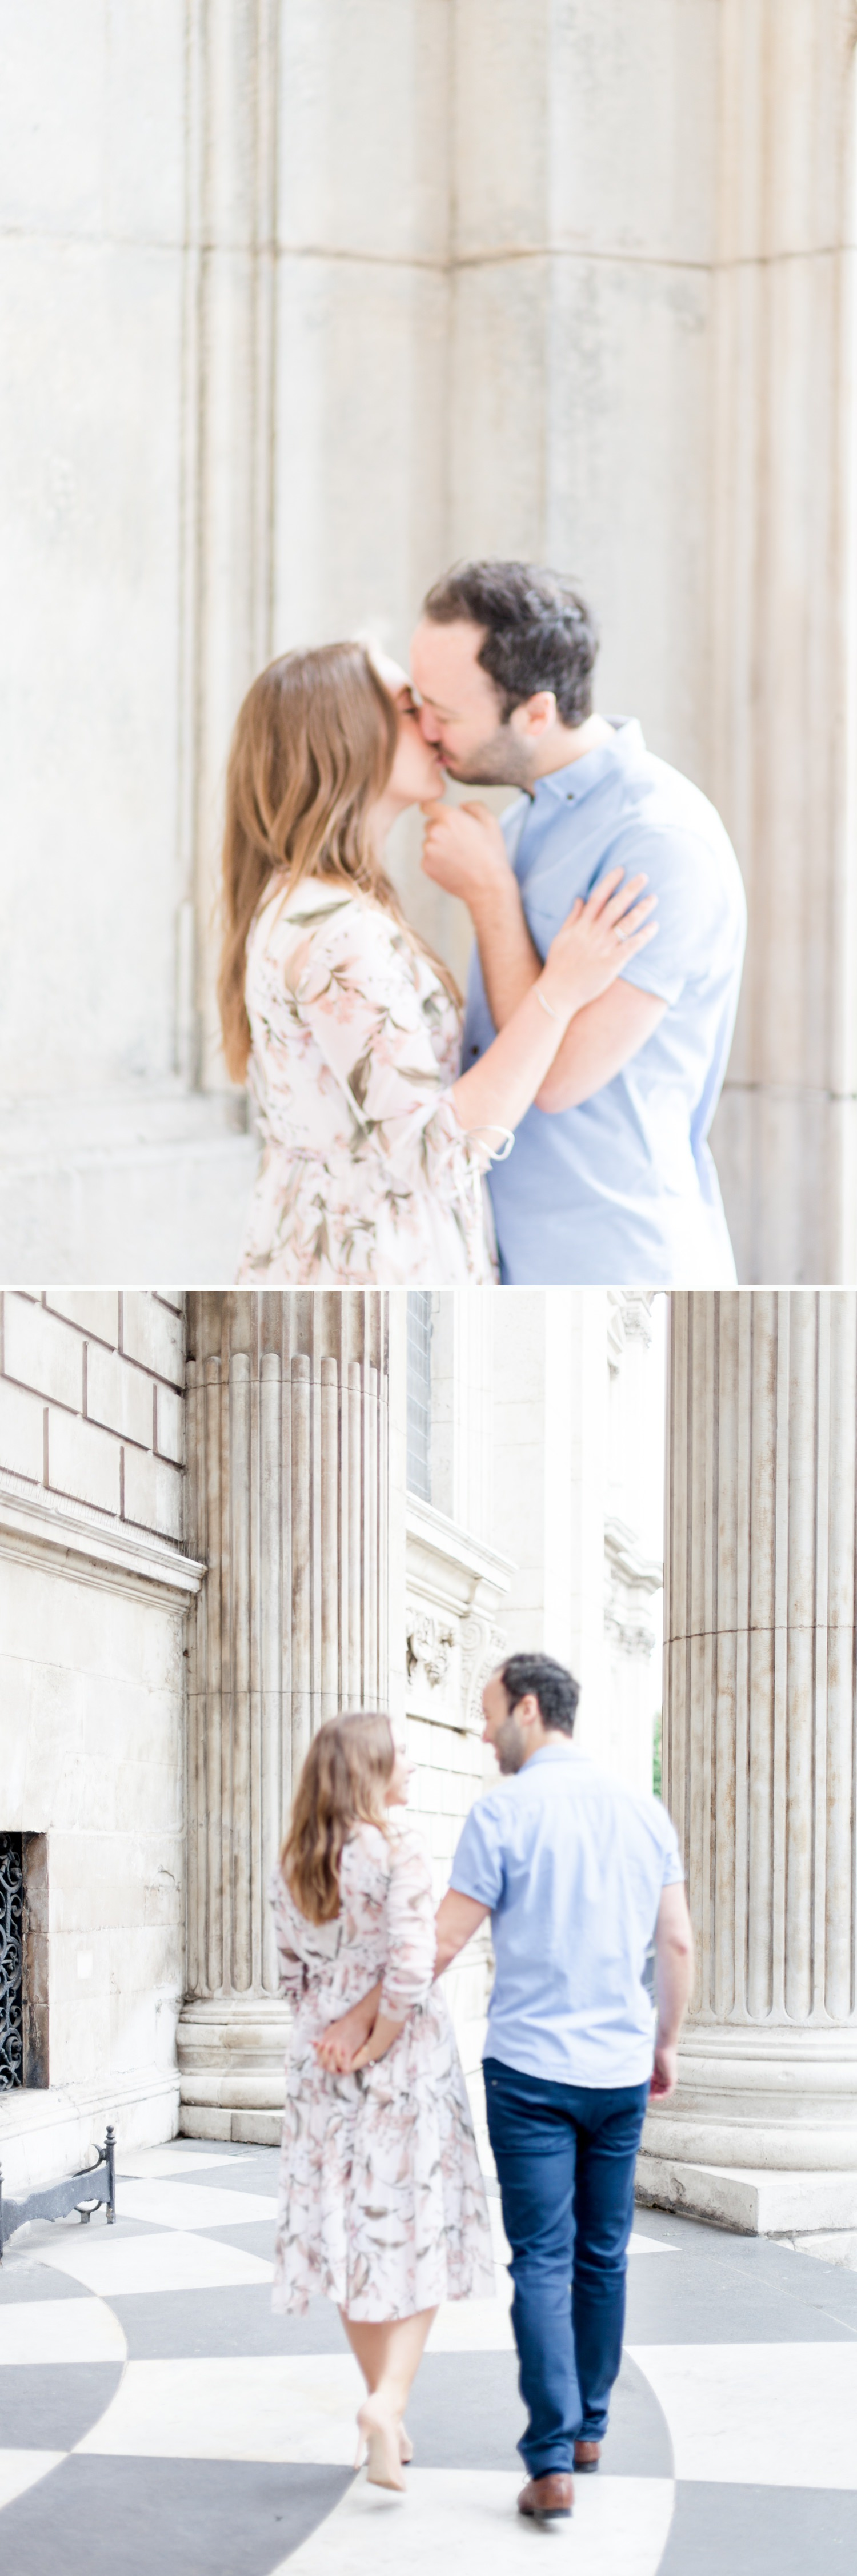 pre wedding shoot london 1 - a couple walk and kiss at St. Paul's Cathedral